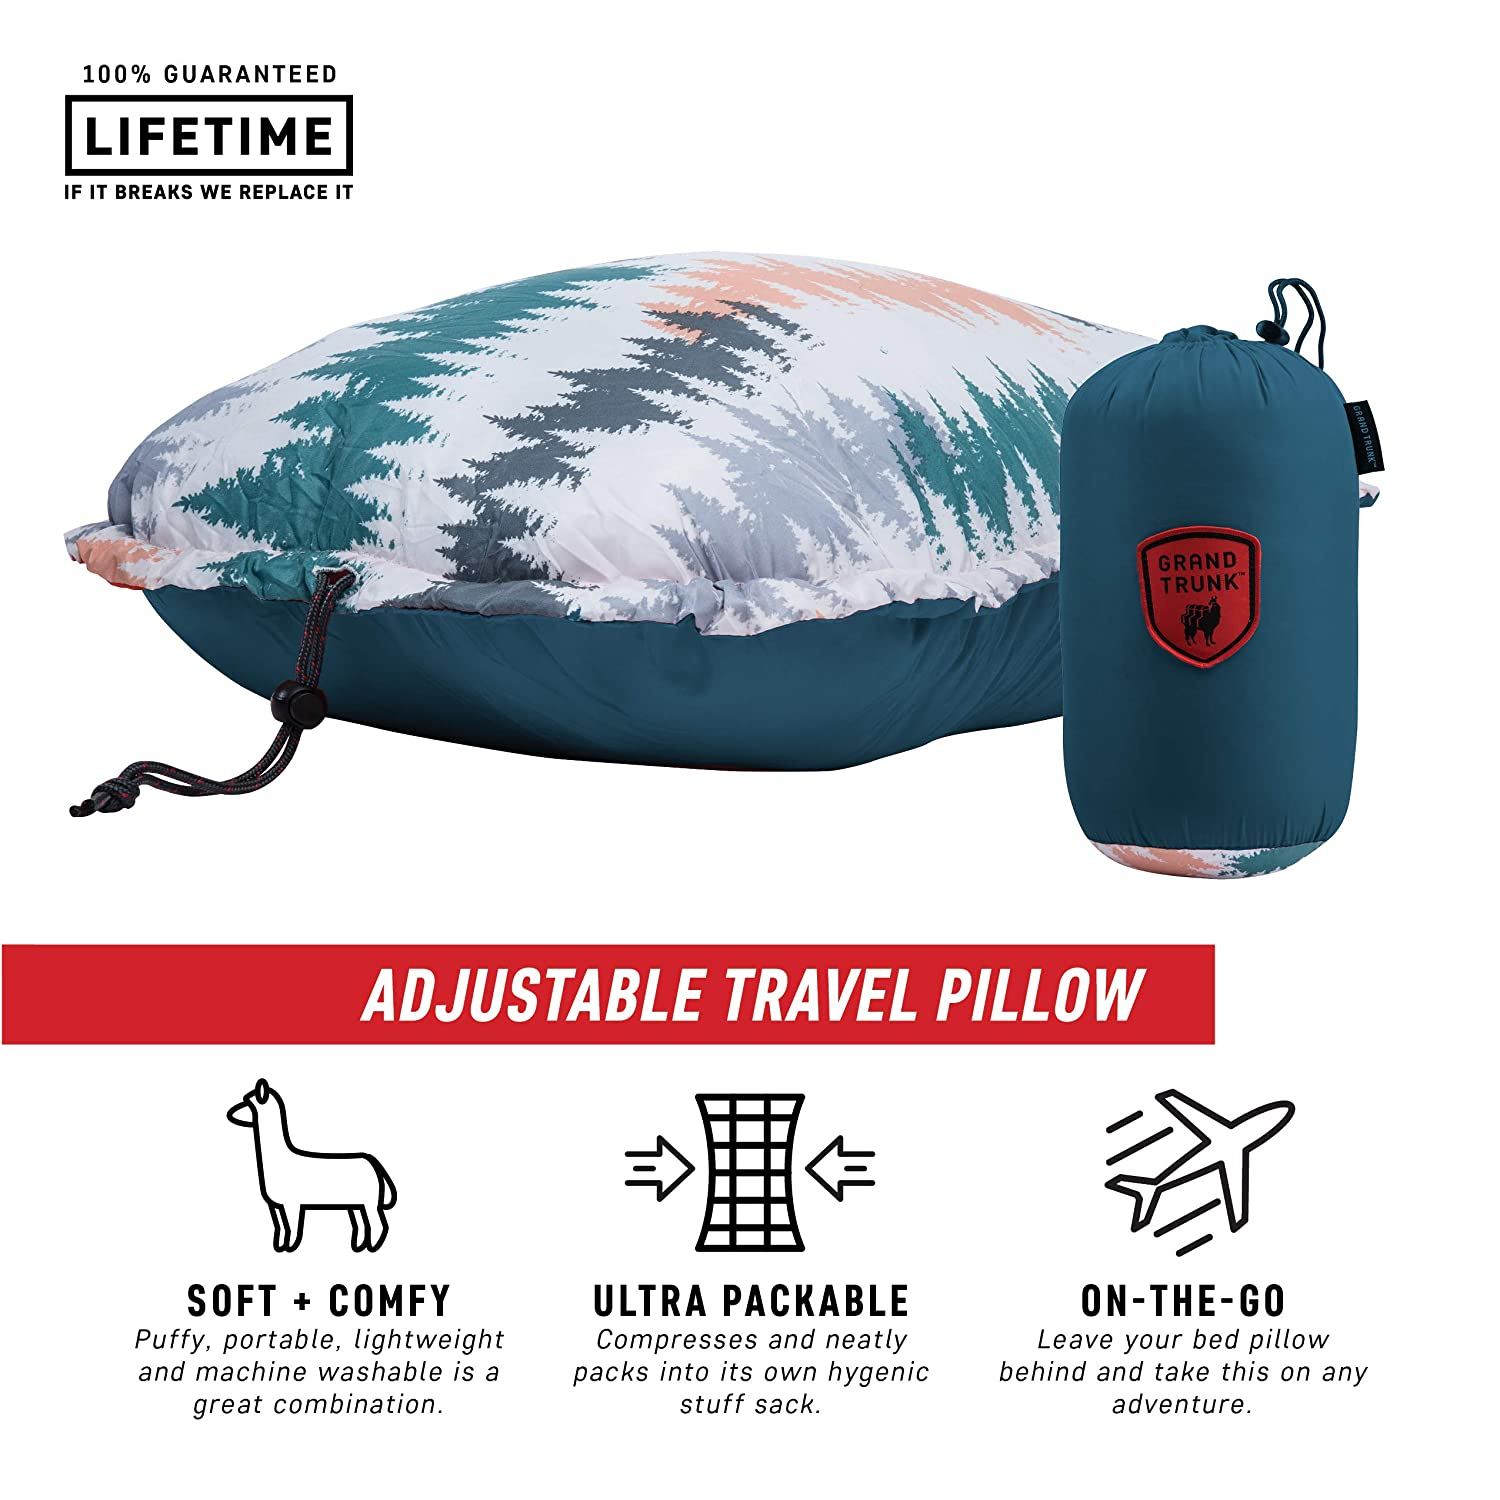 Comfortable Lightweight Adjustable and Packable for Outdoor Adventures Grand Trunk Adjustable Travel Pillow Slate